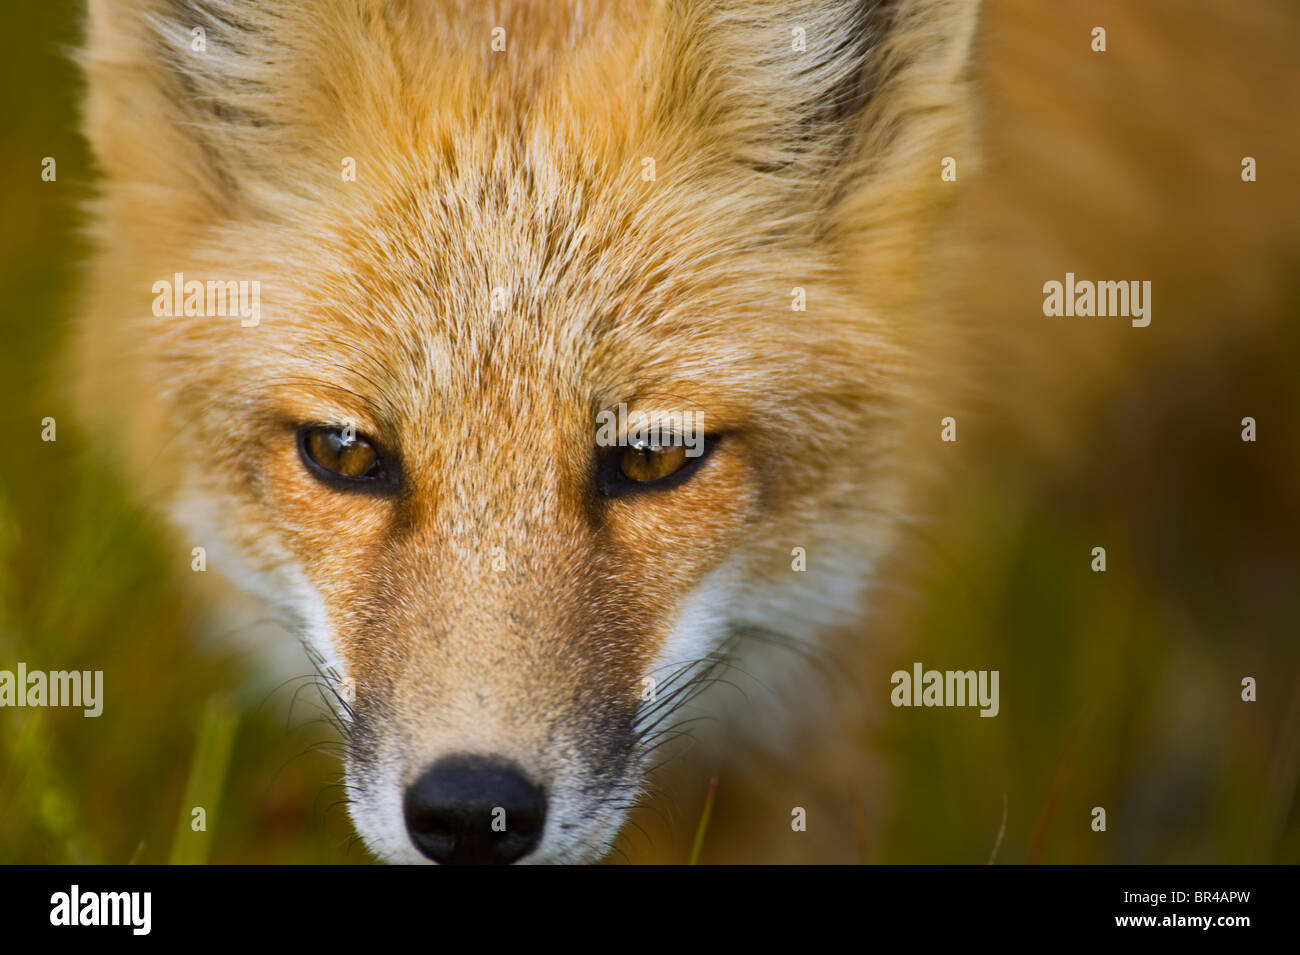 A red fox face close up Stock Photo, Royalty Free Image ...